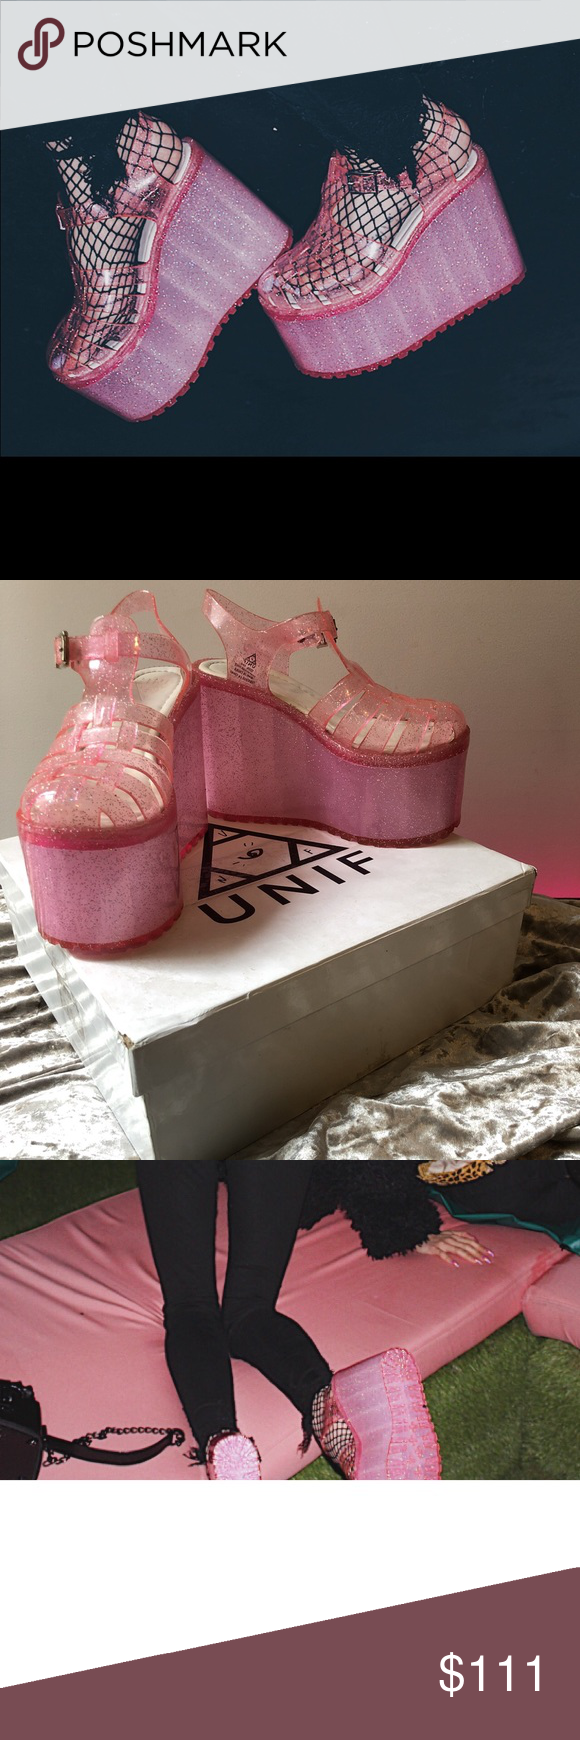 "a0af78903ea3 Pink ""HELLA JELLY"" Pink glittery platform jelly sandals UNIF Shoes Platforms"